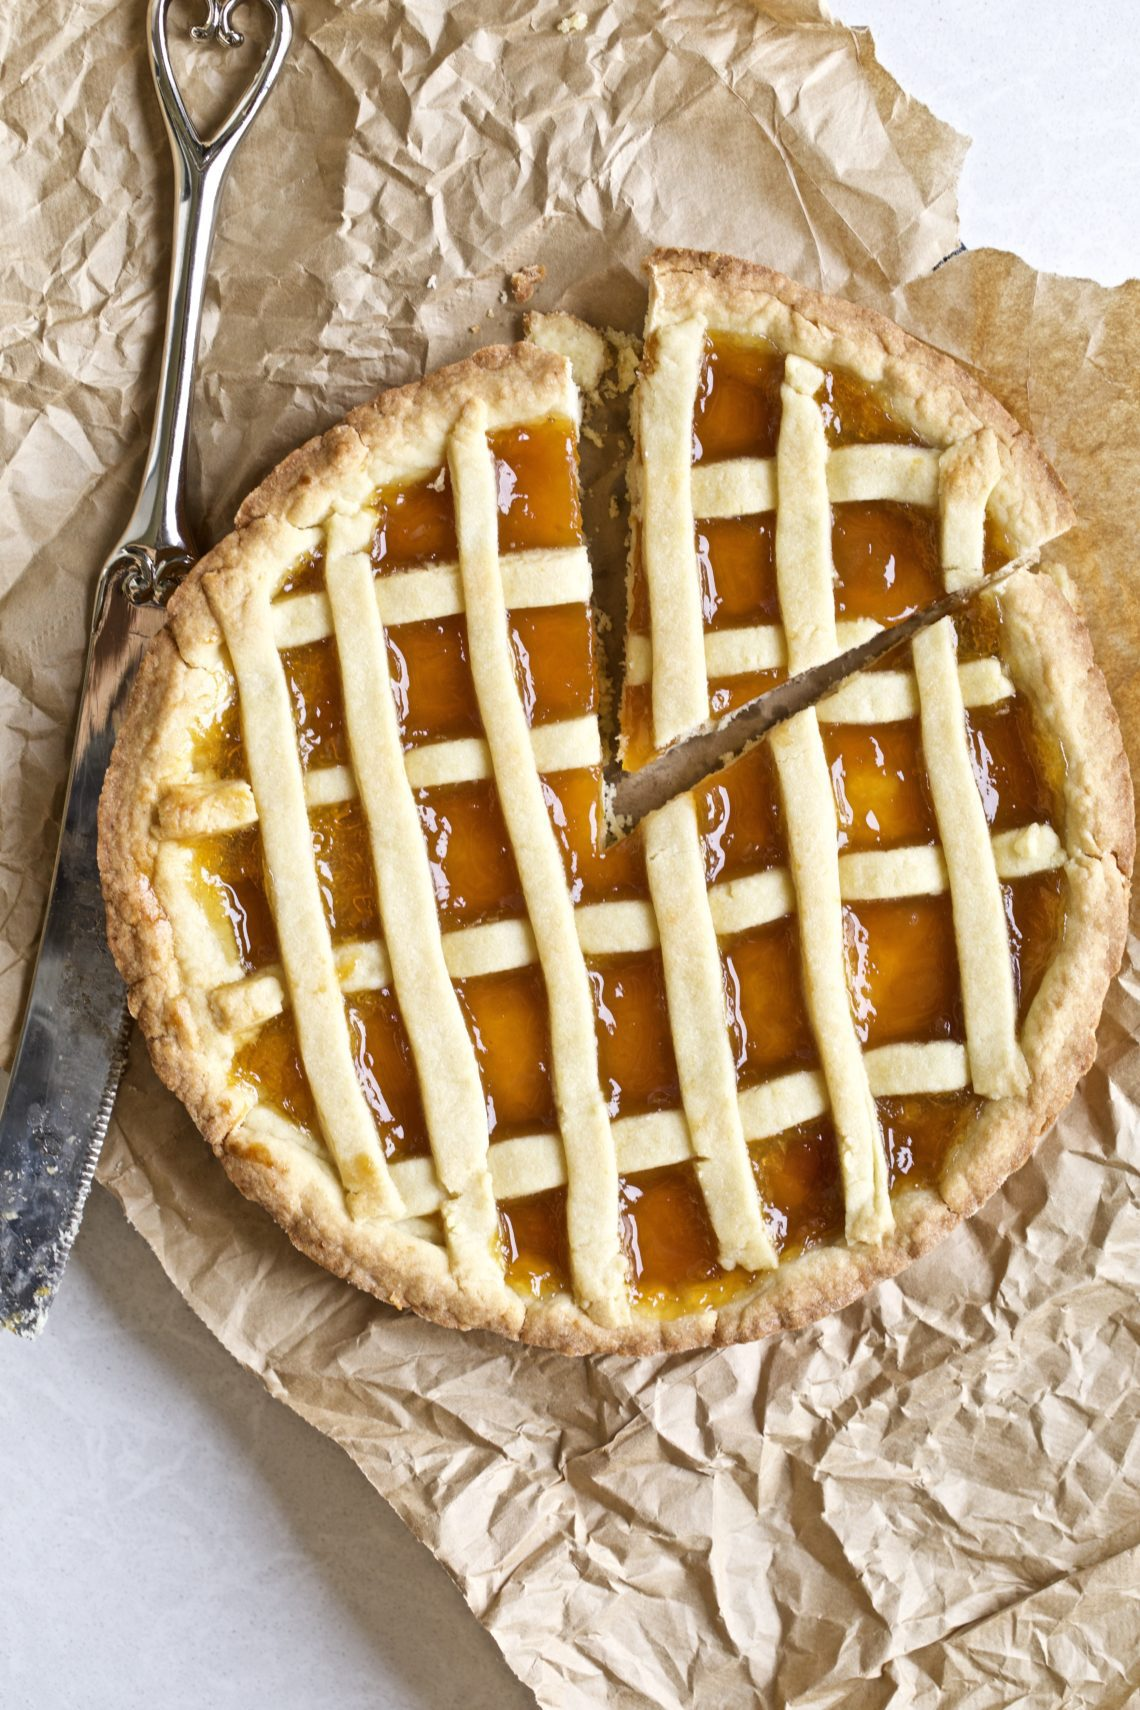 Whole crostata with a slice taken out